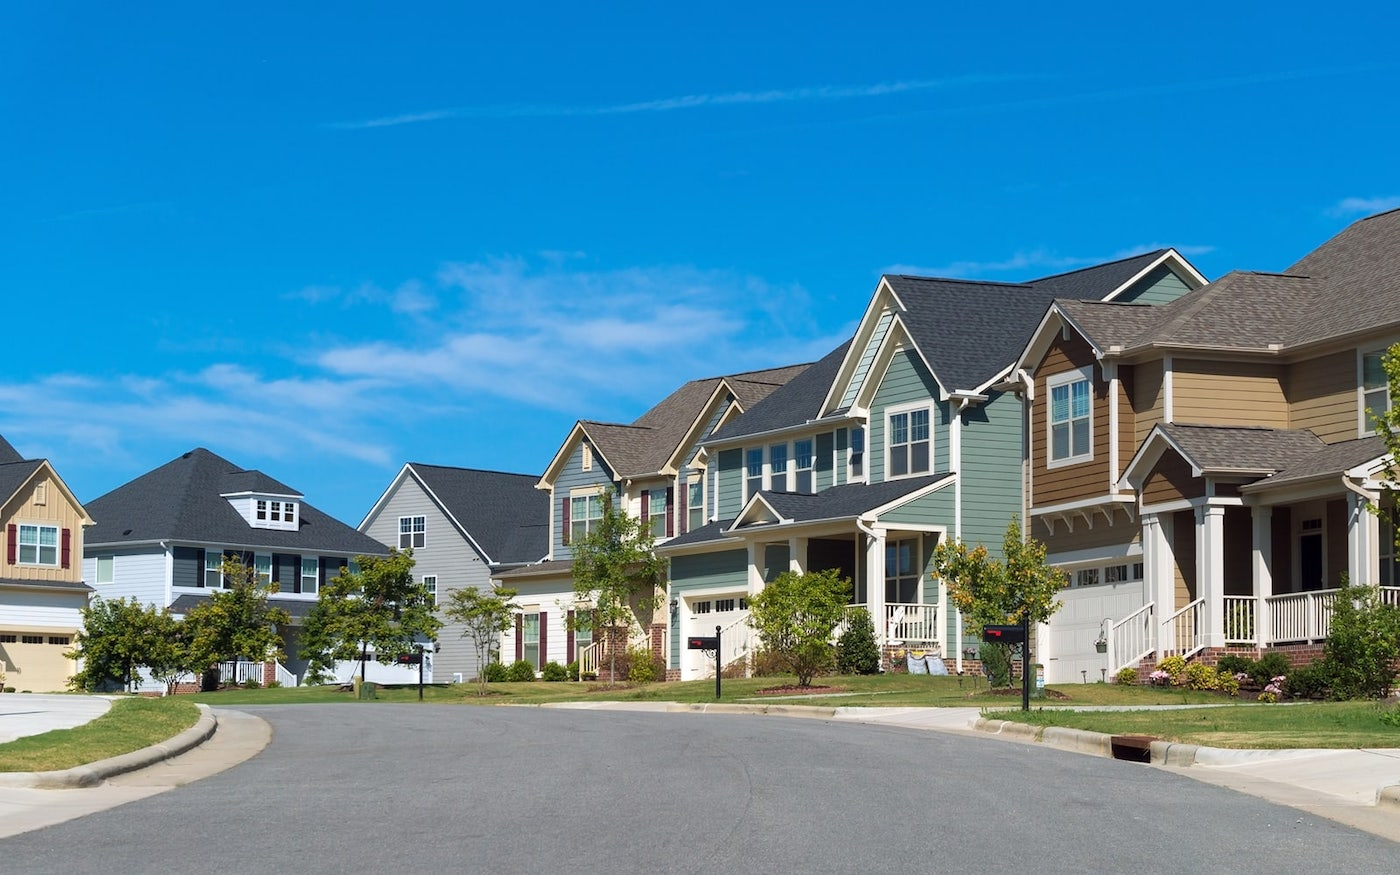 Selling a Home in Morganville, New Jersey? There's a form (or 100) for that!